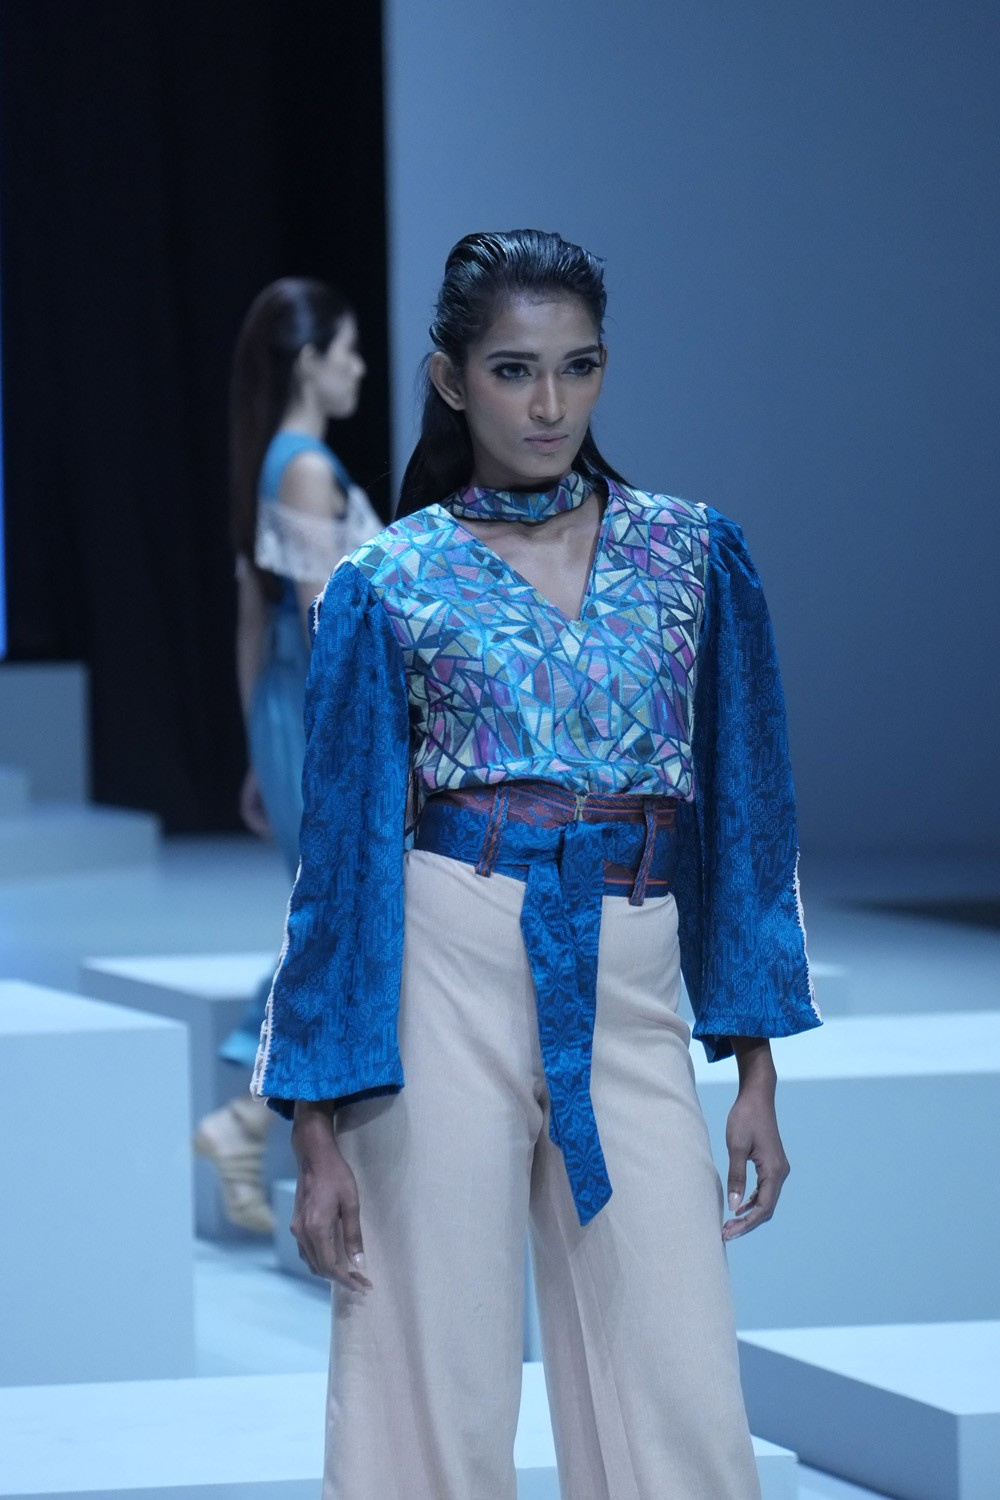 A model struts down the runway wearing clothing from the collection of designer Julietteart. (JP/Jerry Adiguna).